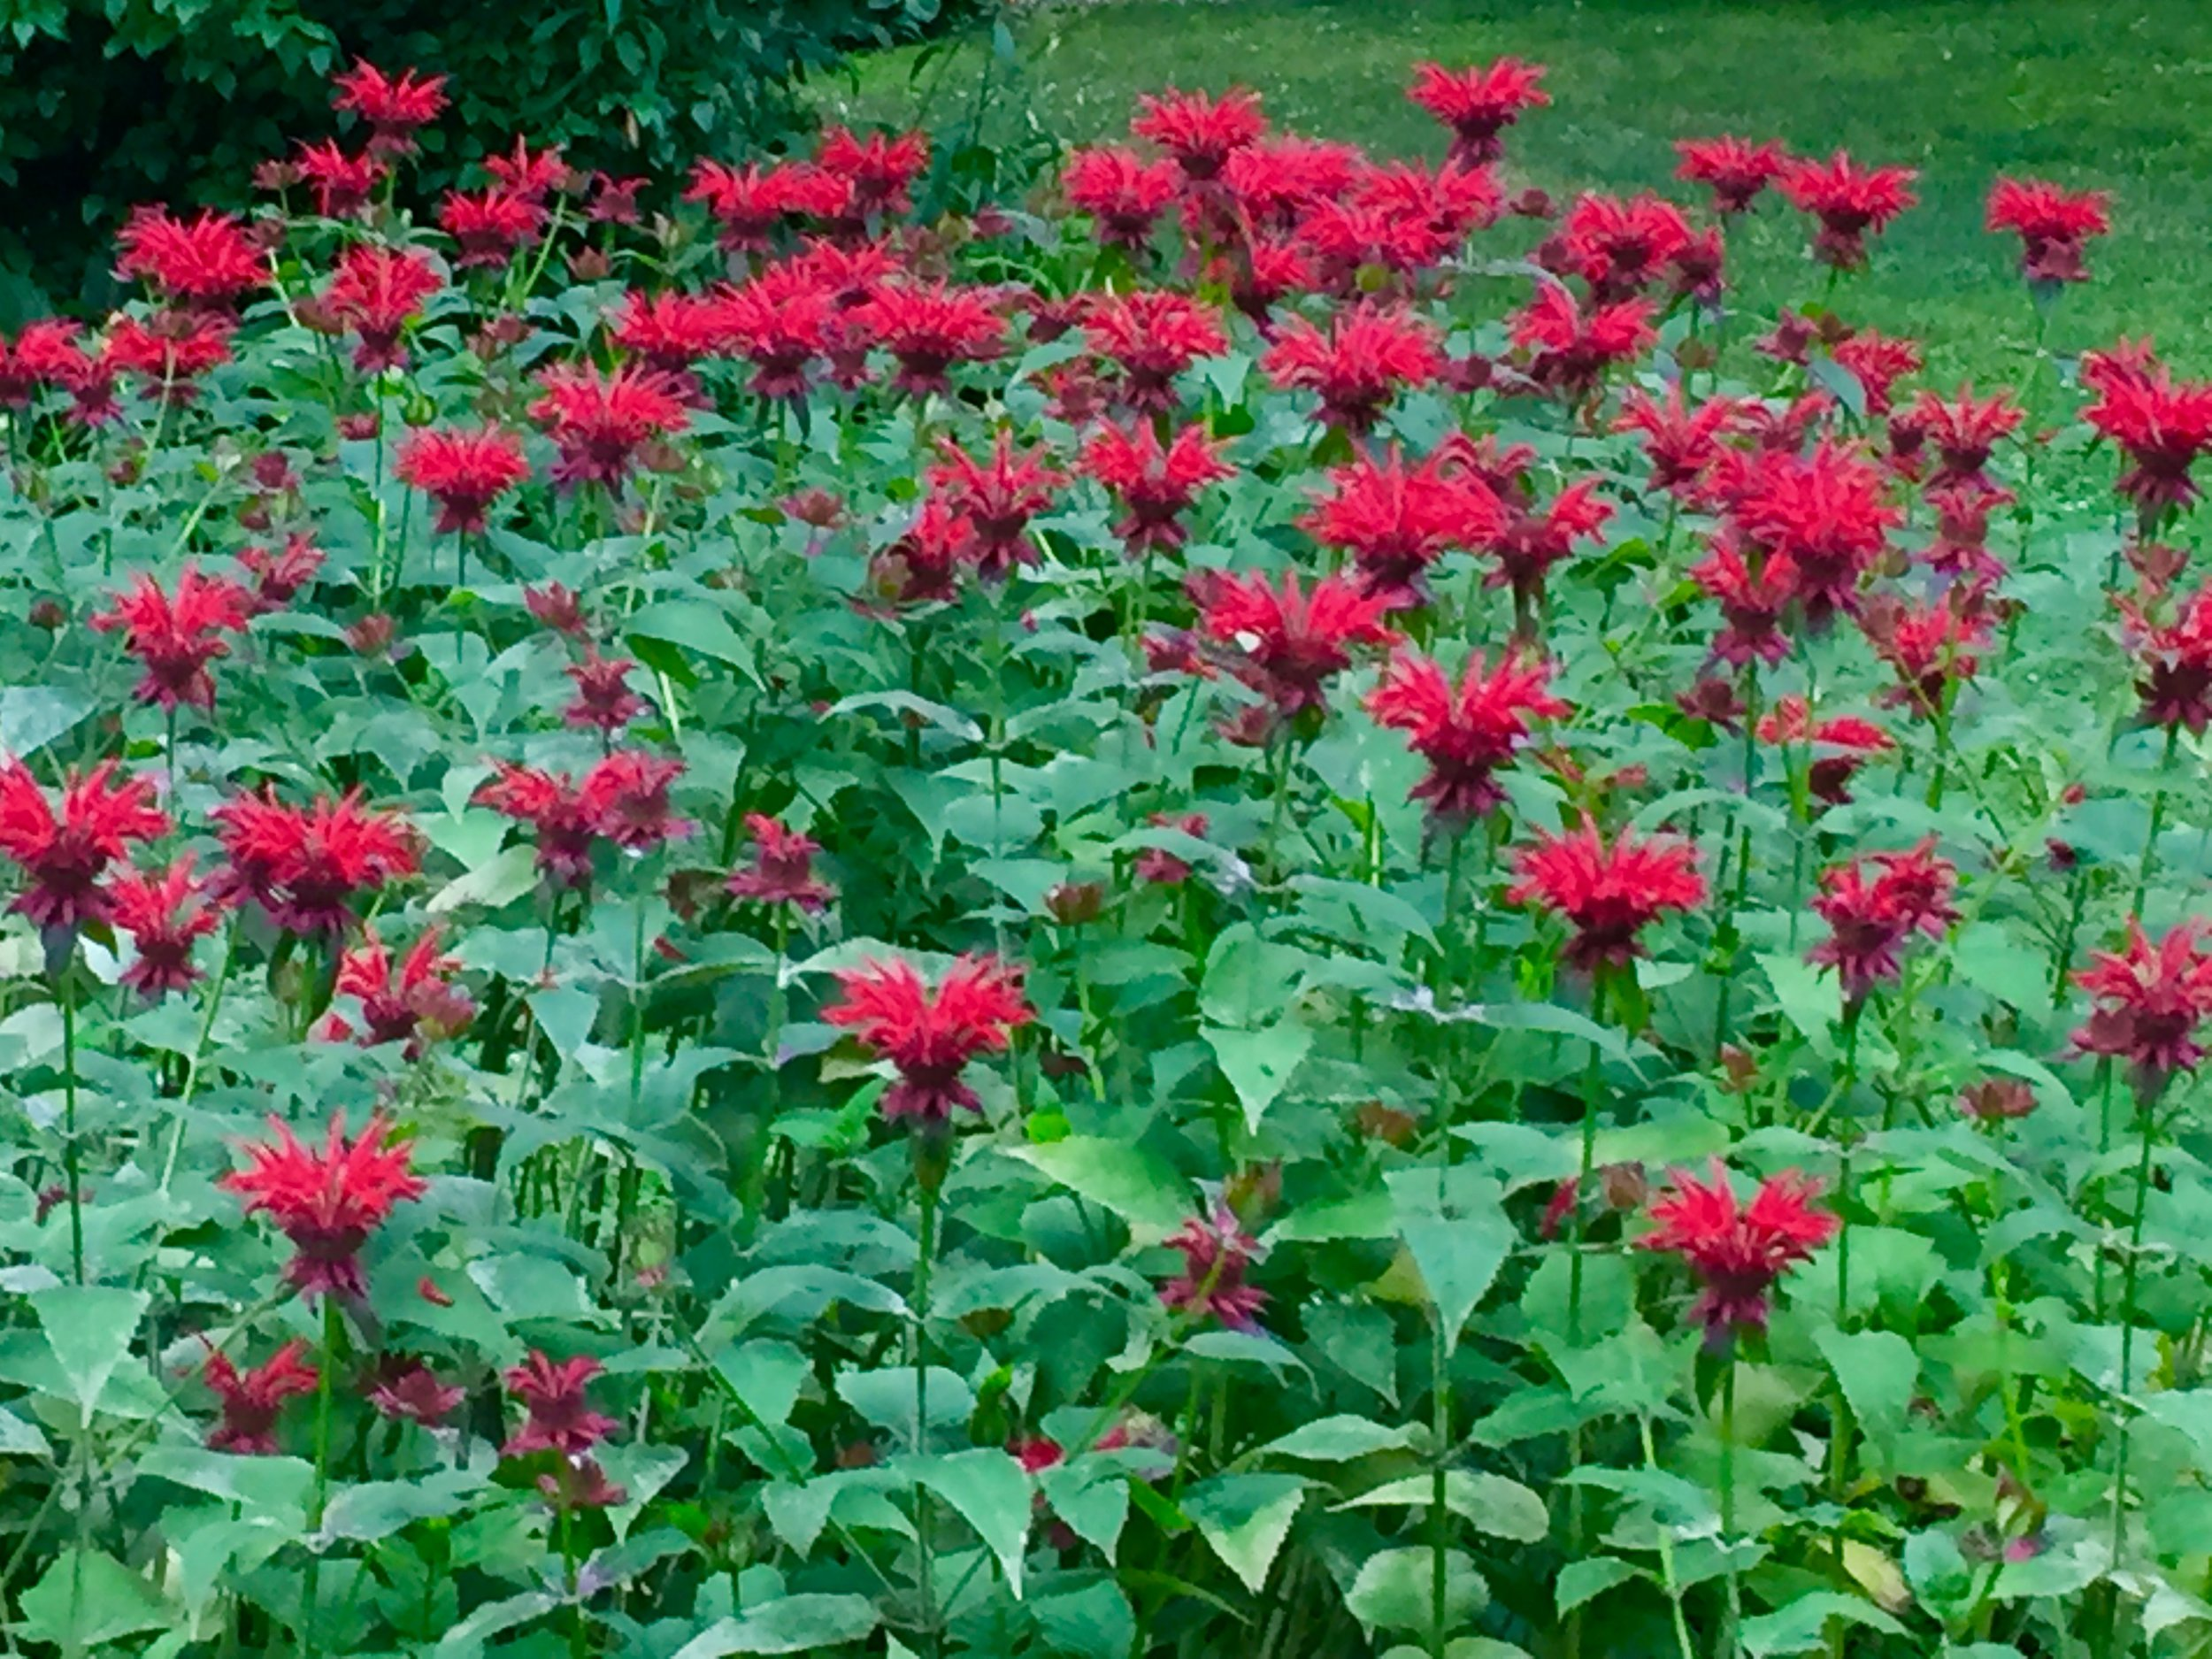 Monarda didyma in bloom.